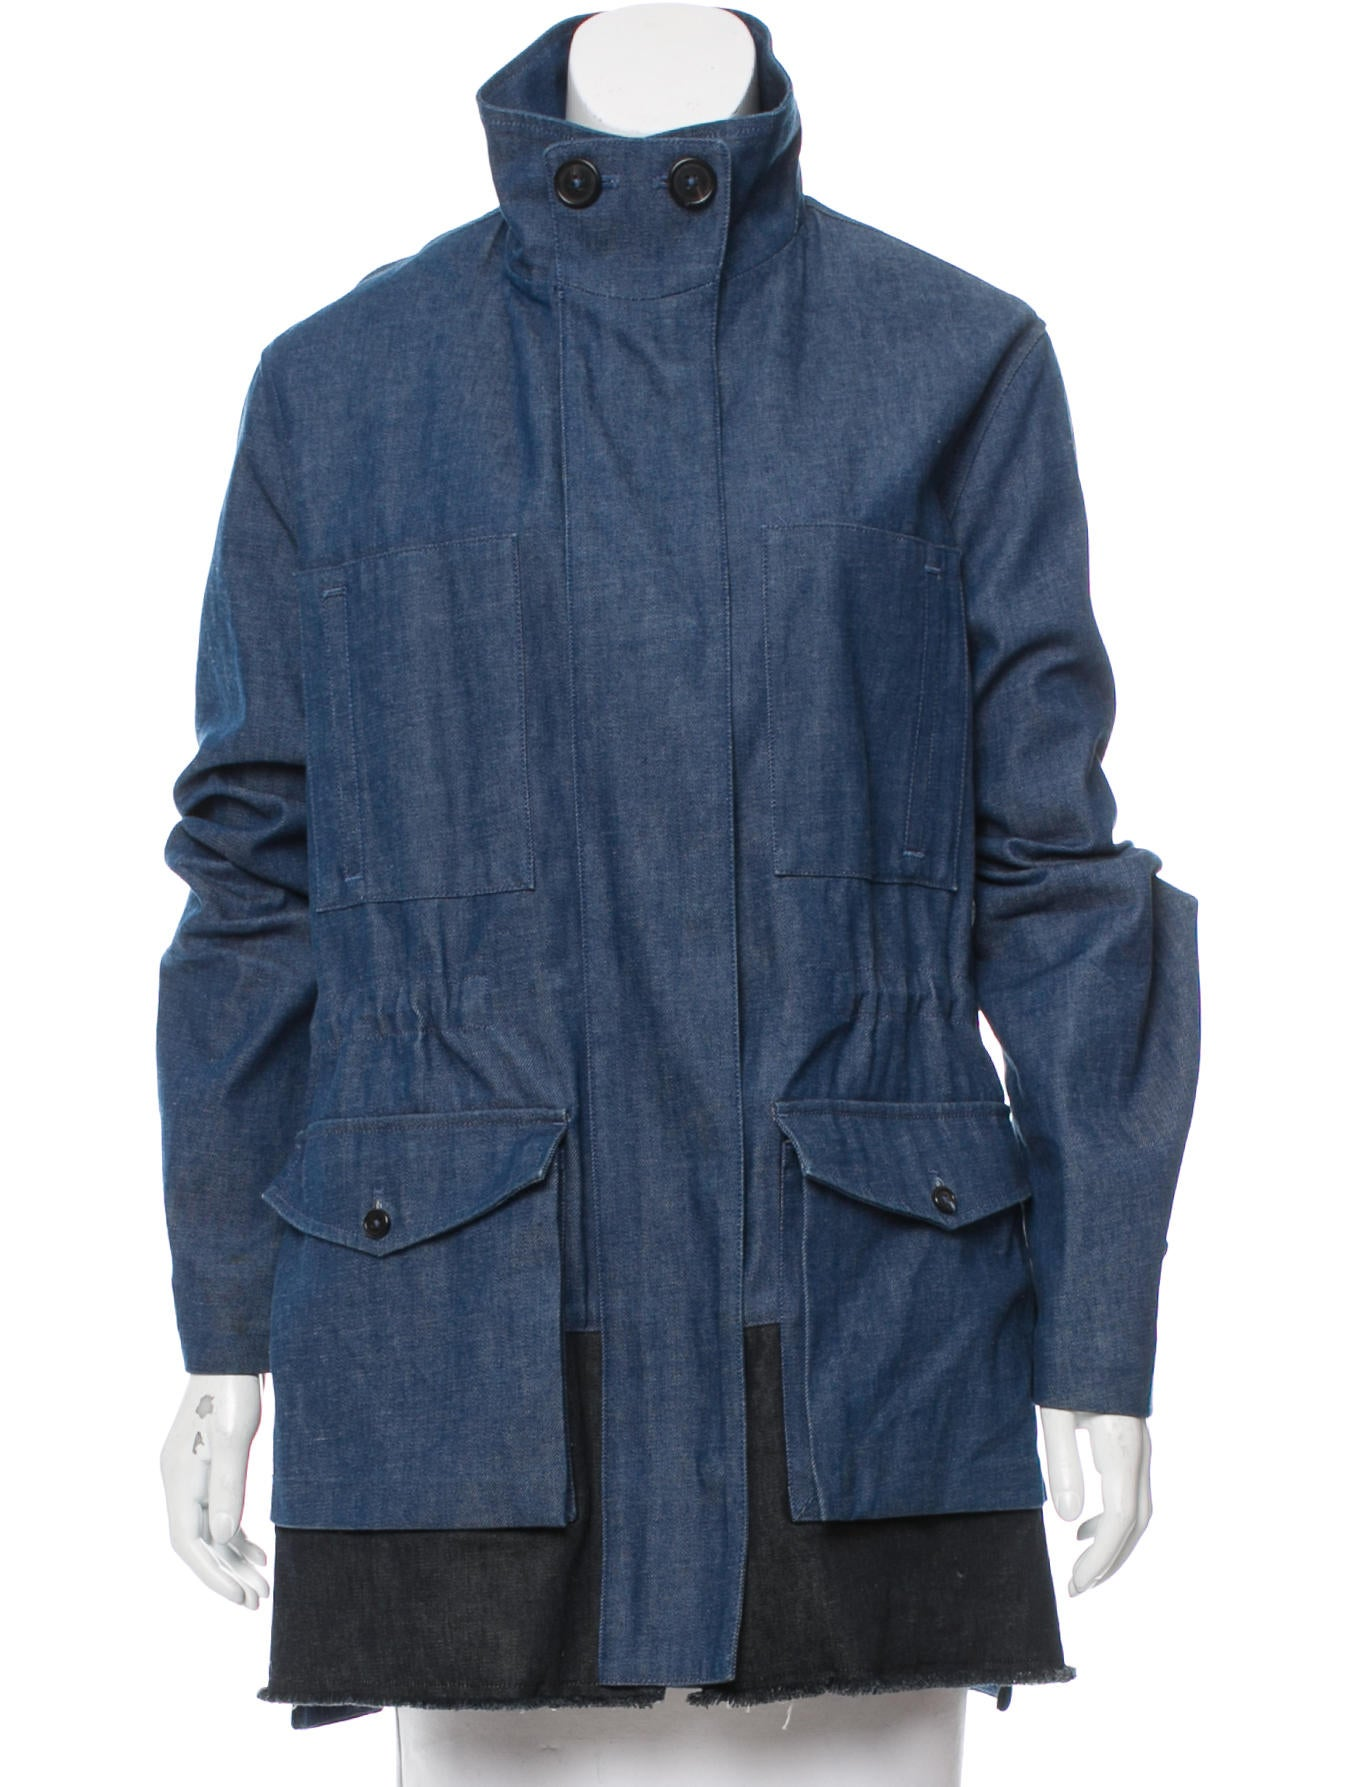 Drawstring Clothing Denim Pro36693The Proenza Schouler Jacket hdCstQr